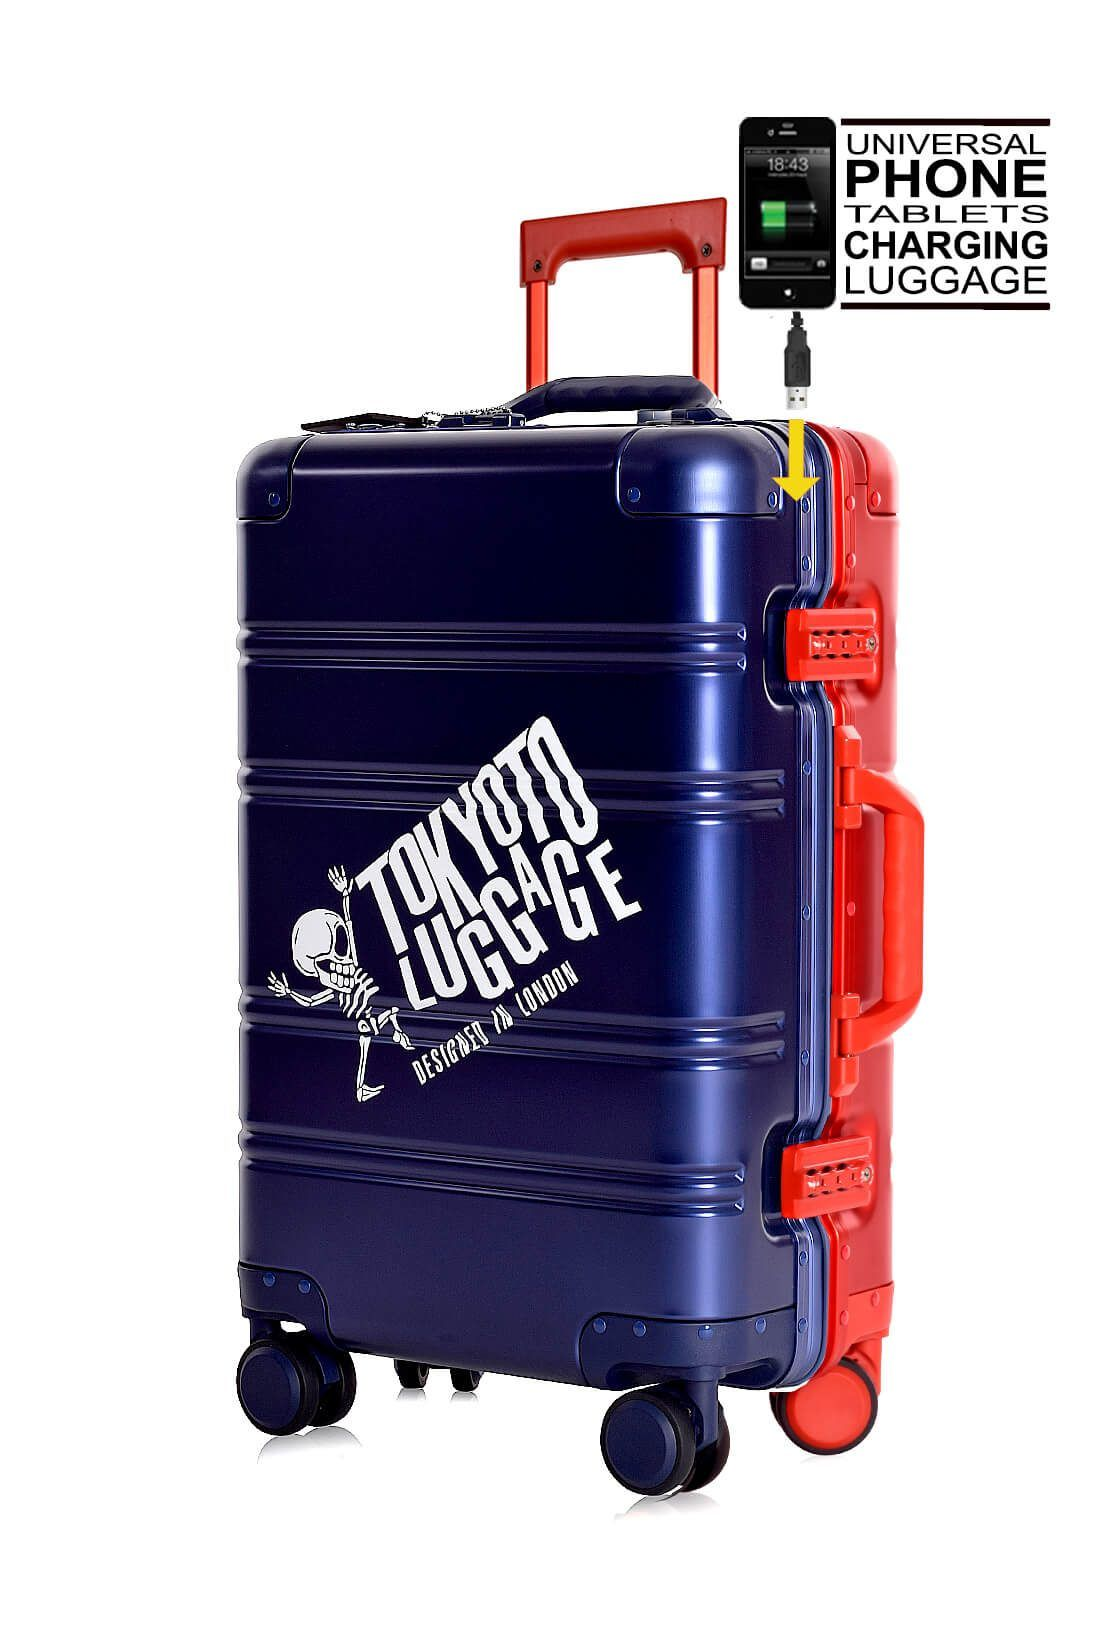 Valise Aluminium Online Cabine Trolley Avec Chargeur Powerbank TOKYOTO LUGGAGE Modelle BLUE RED 1